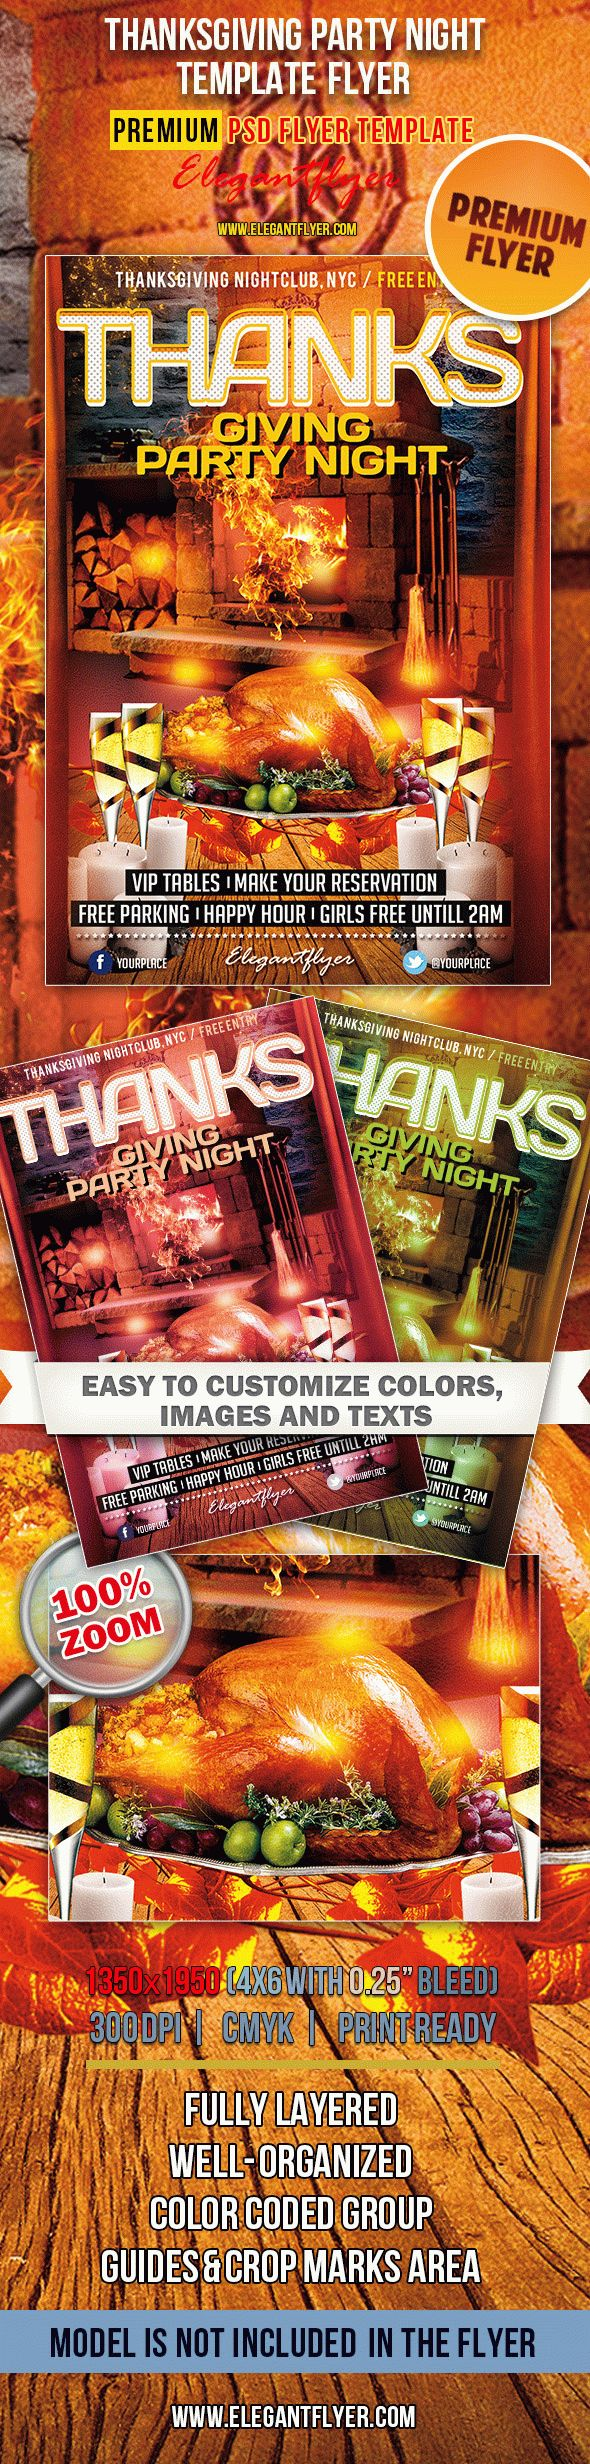 Thanksgiving Party Night – Premium Club flyer PSD Template